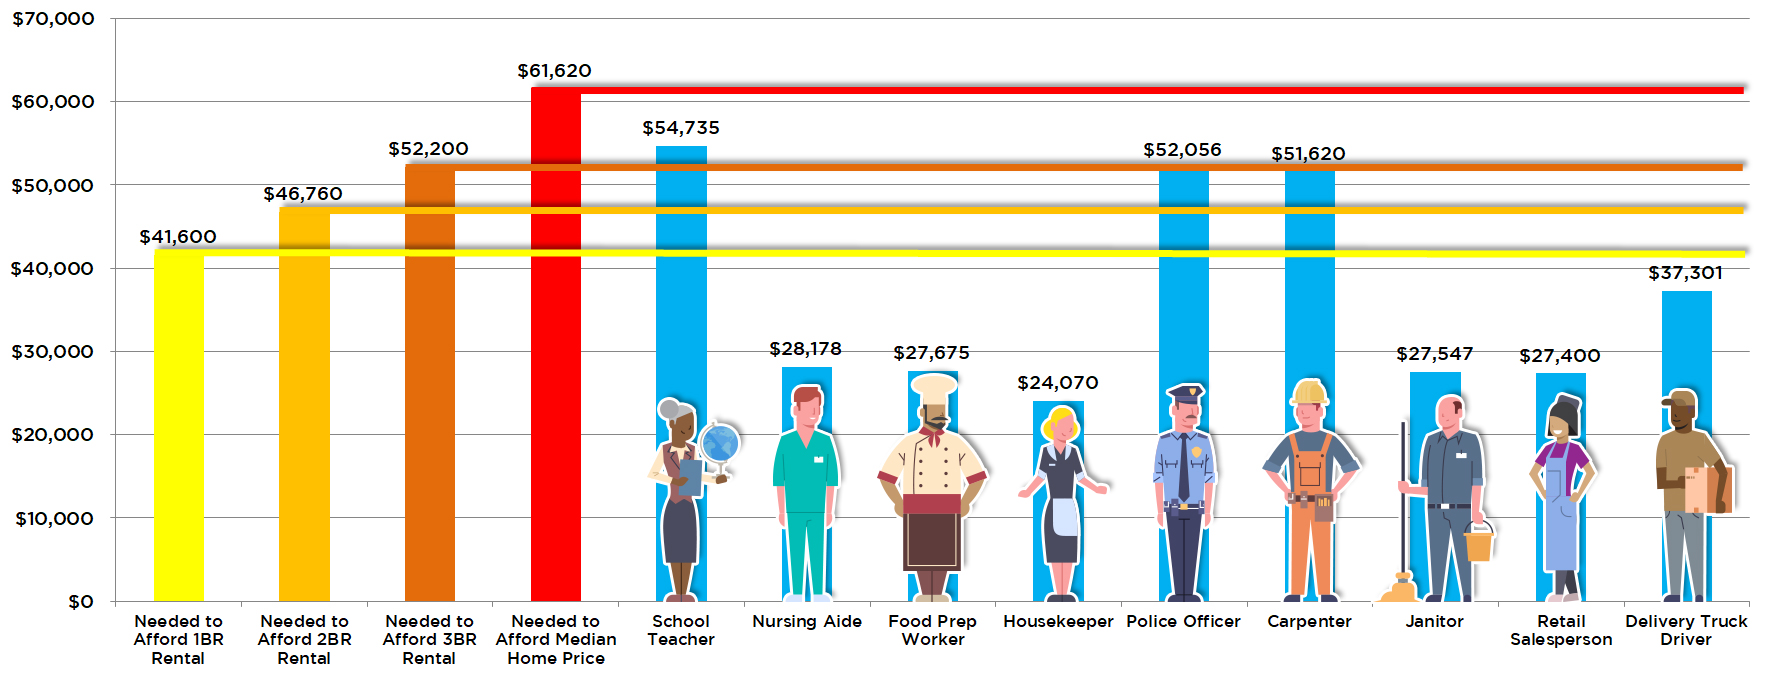 Chart comparing occupations to affordability